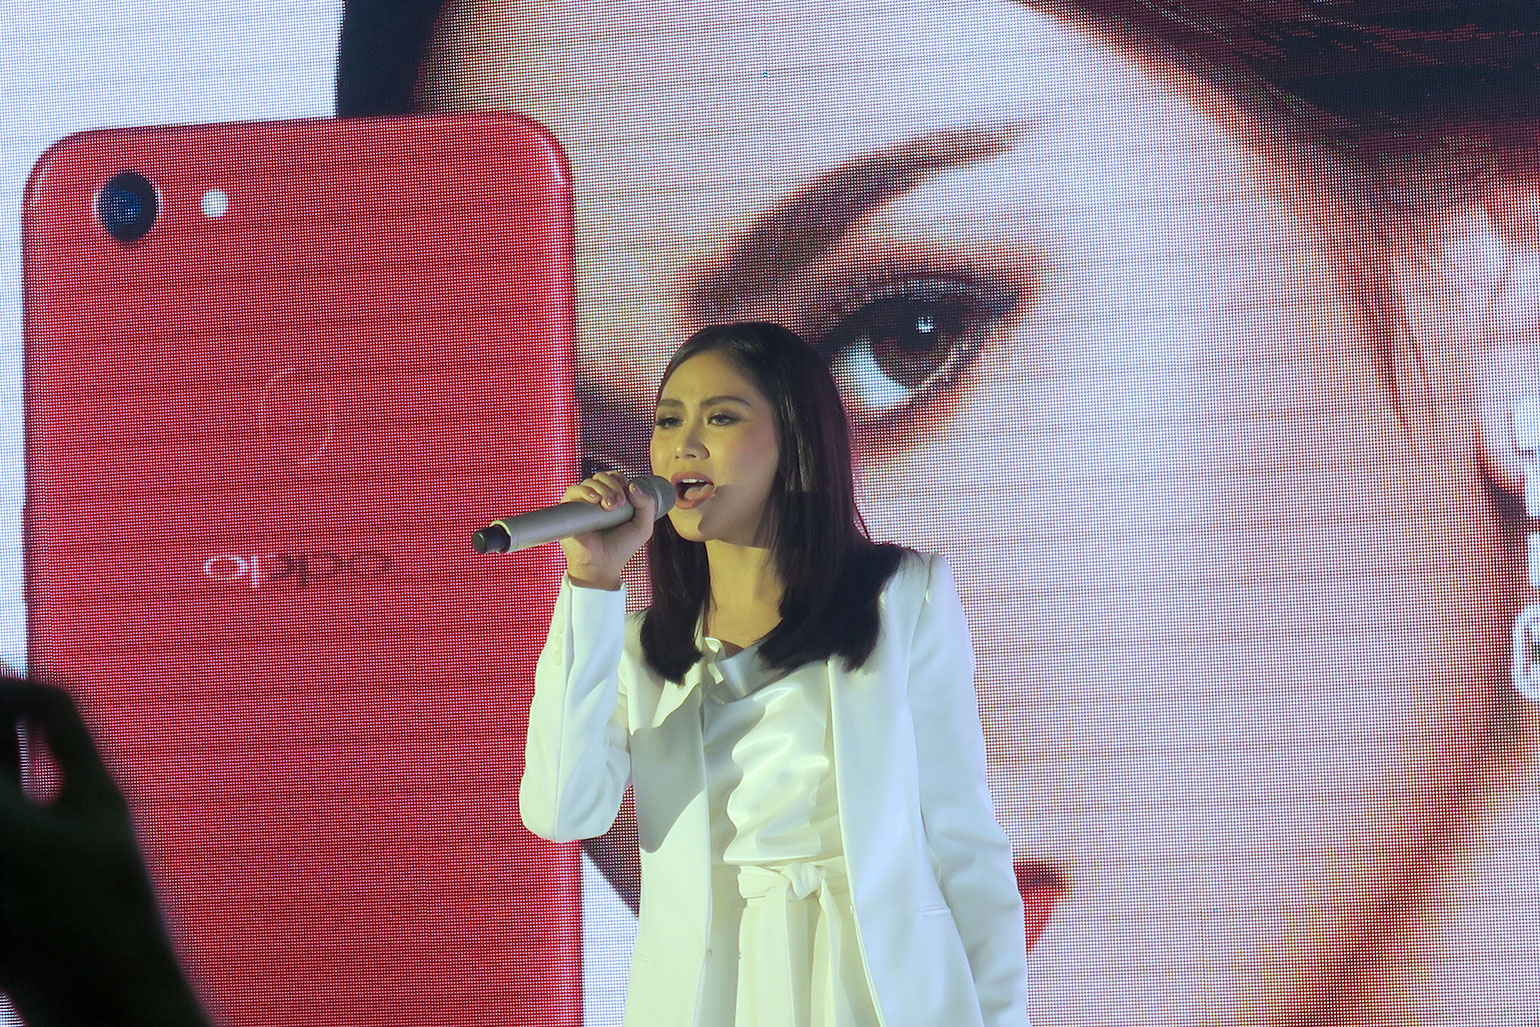 8 OPPO F5 Review - Selfie Expert - Capture The Real You - Gen-zel She Sings Beauty